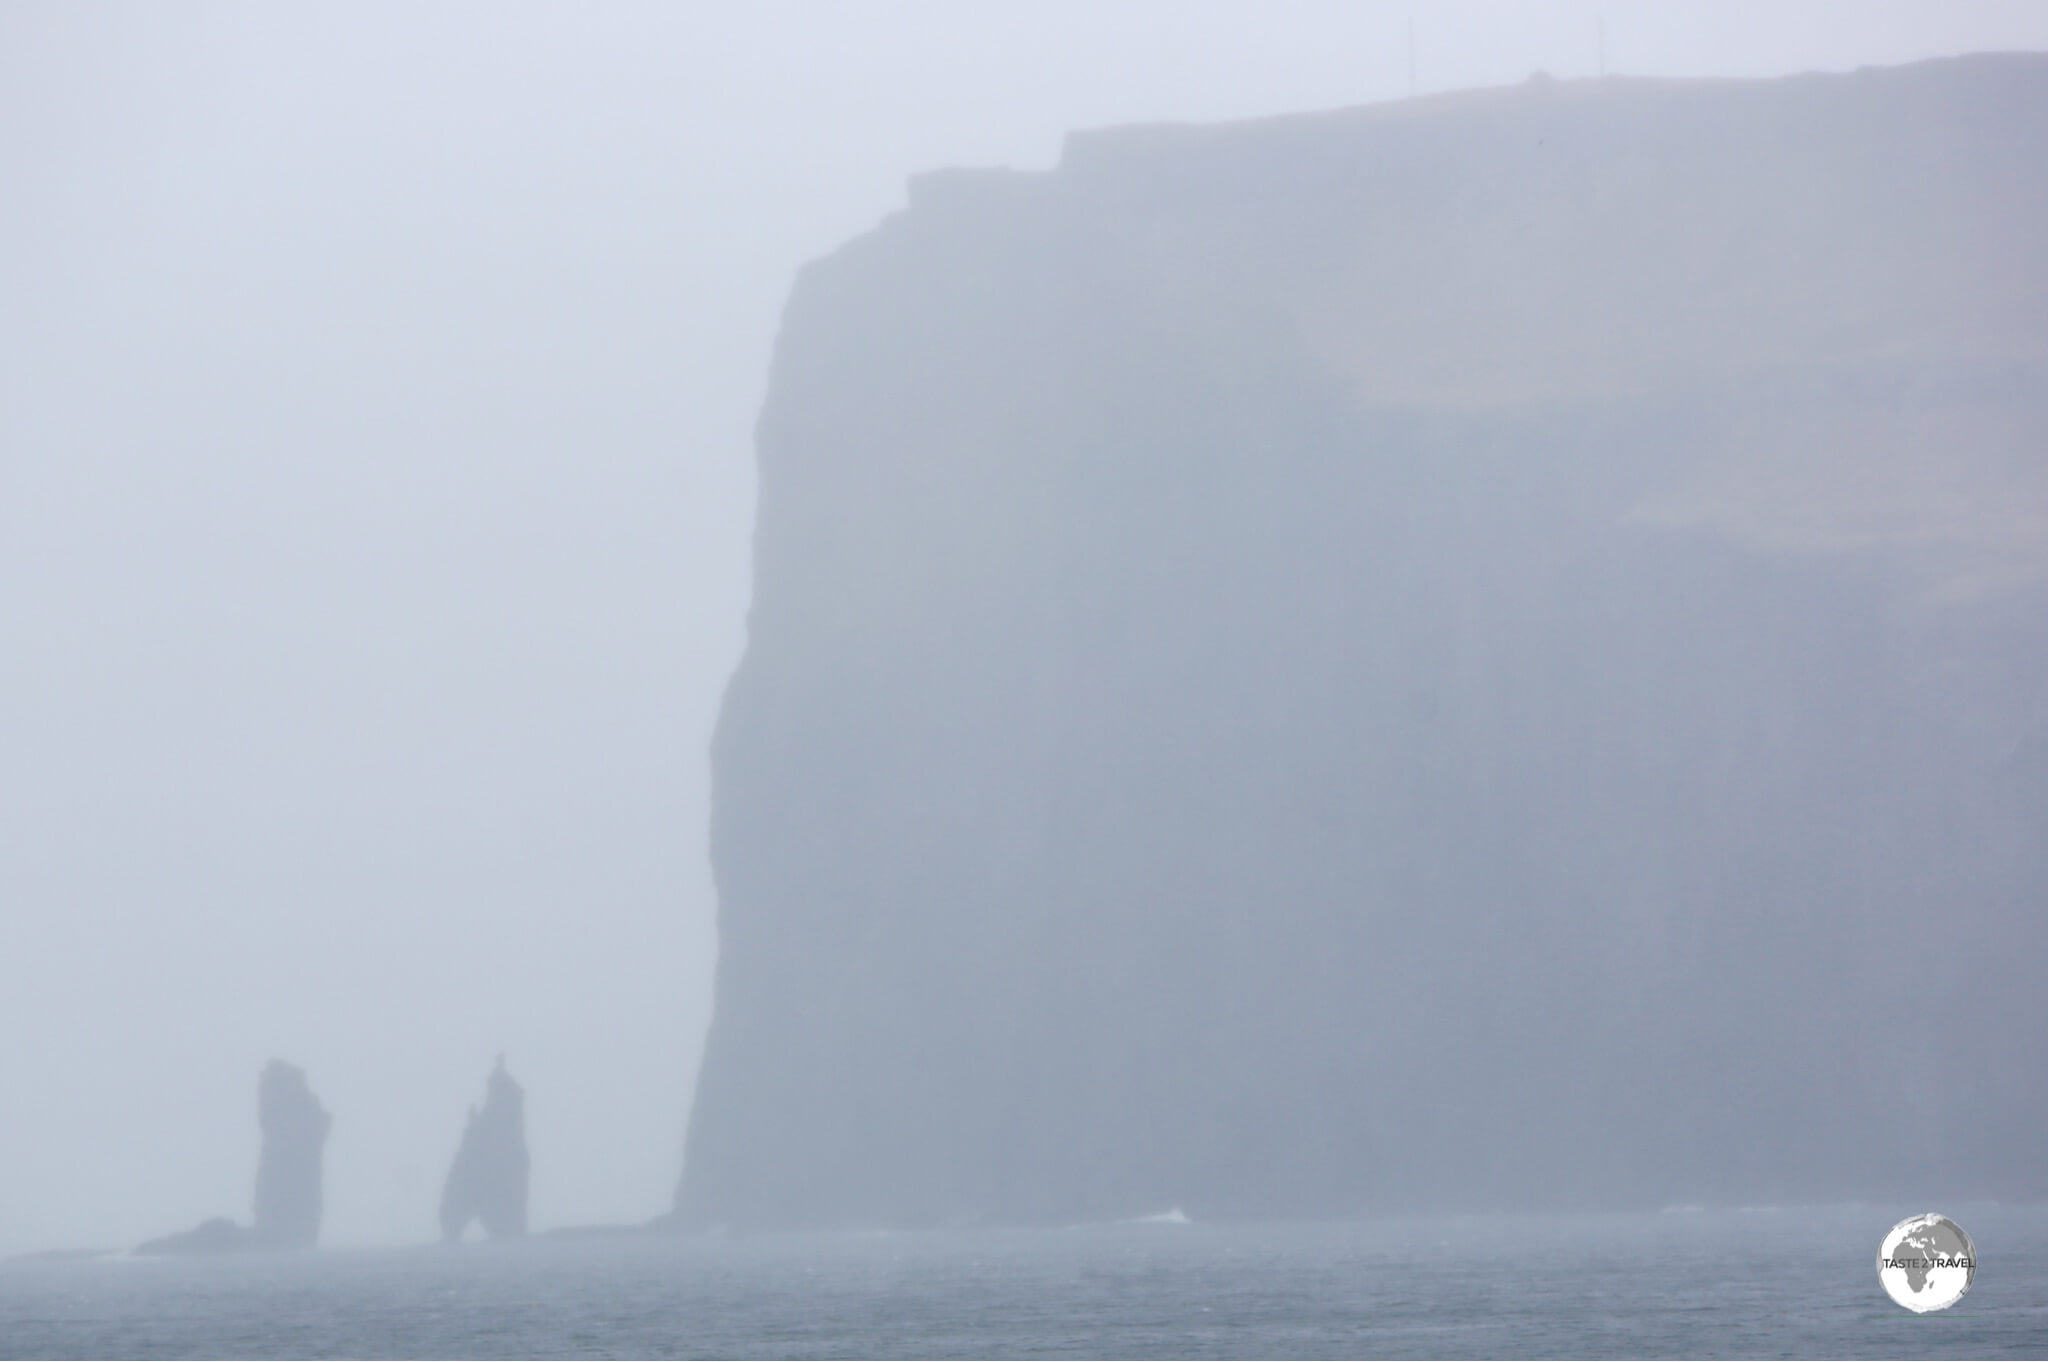 A view of the soaring 343-metre-high Eiðiskollur promontory with the two 75-m high sea stacks - Risin og Kellingin.